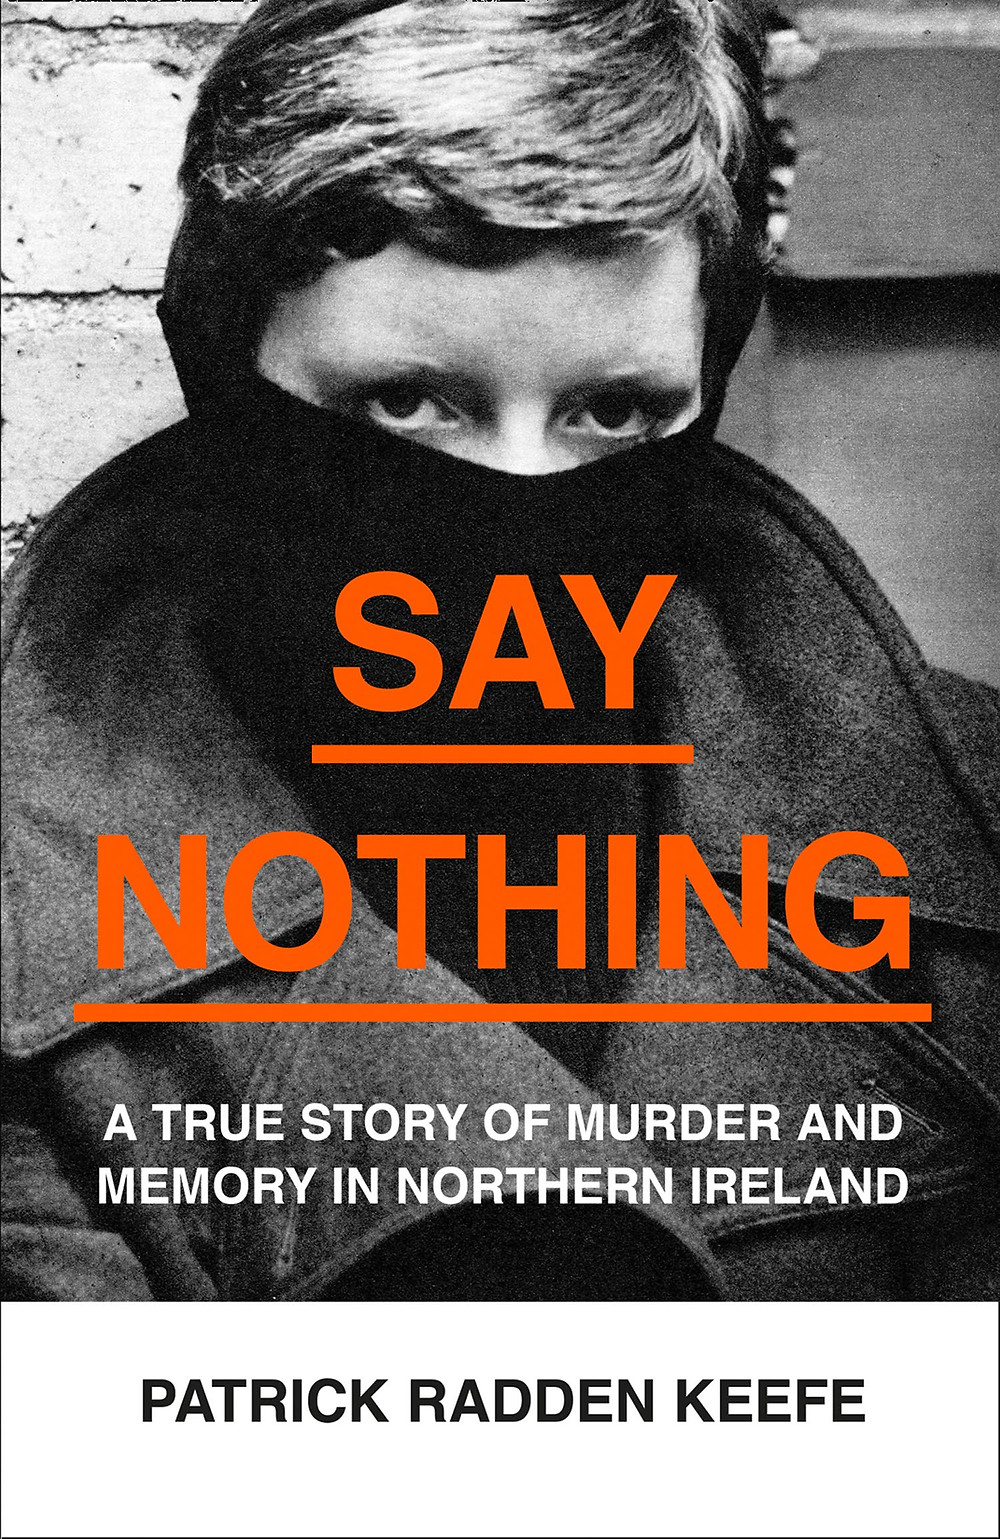 Say Nothing: A True Story of Murder & Memory in Northern Ireland by Patrick Radden Keefe